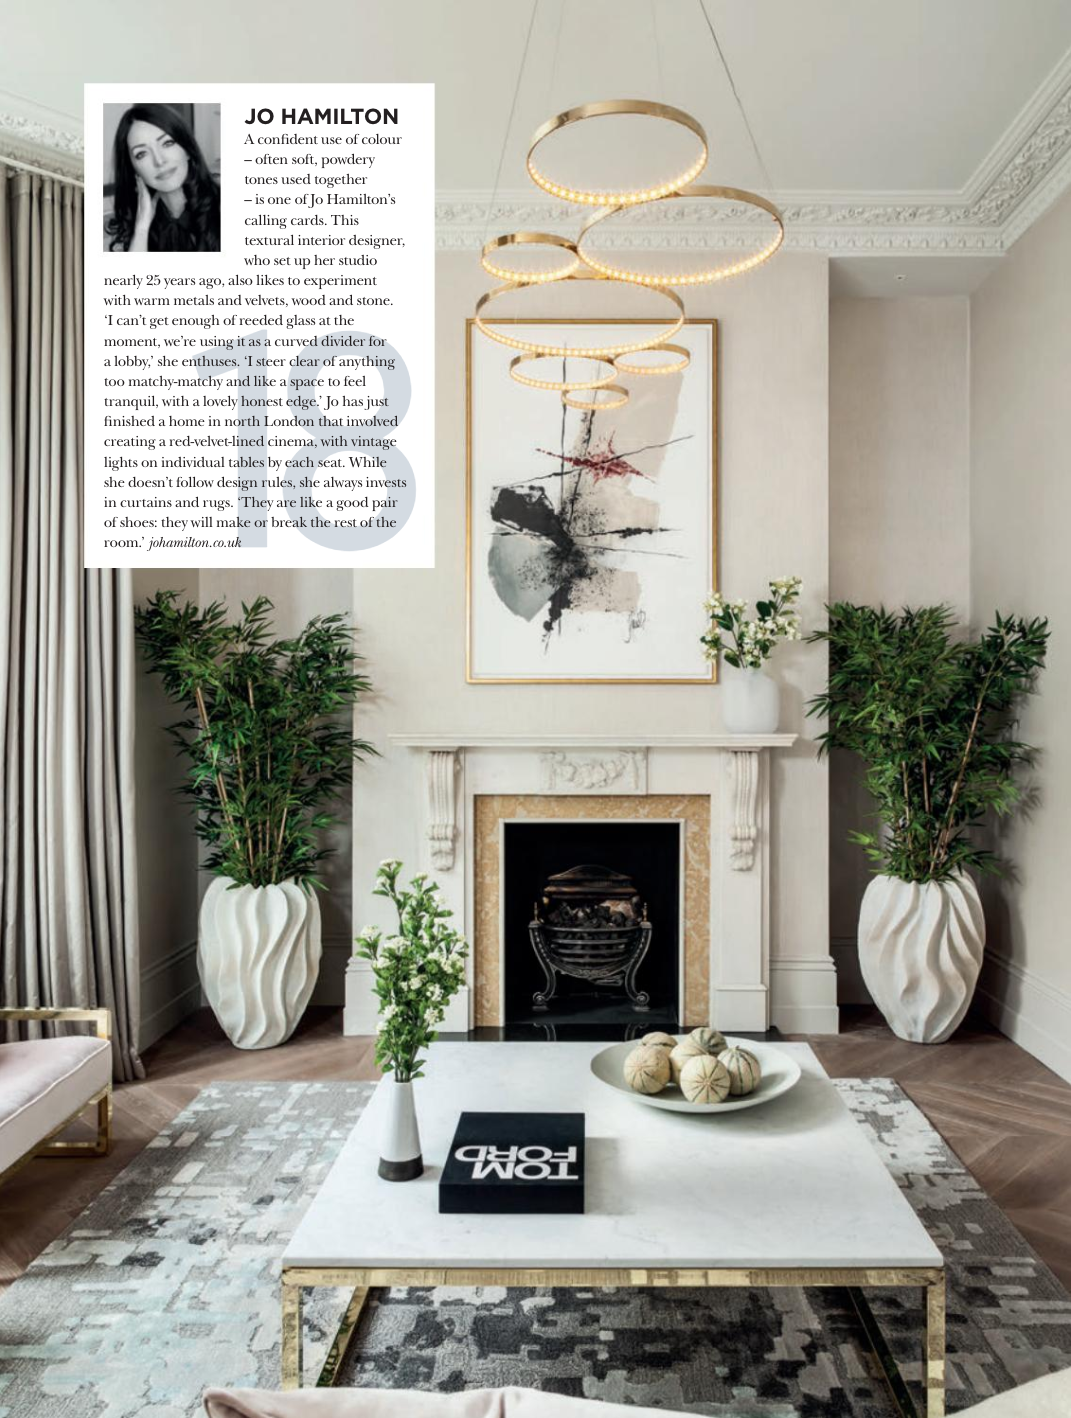 High end interior designer Jo Hamilton listed among the UK's finest b